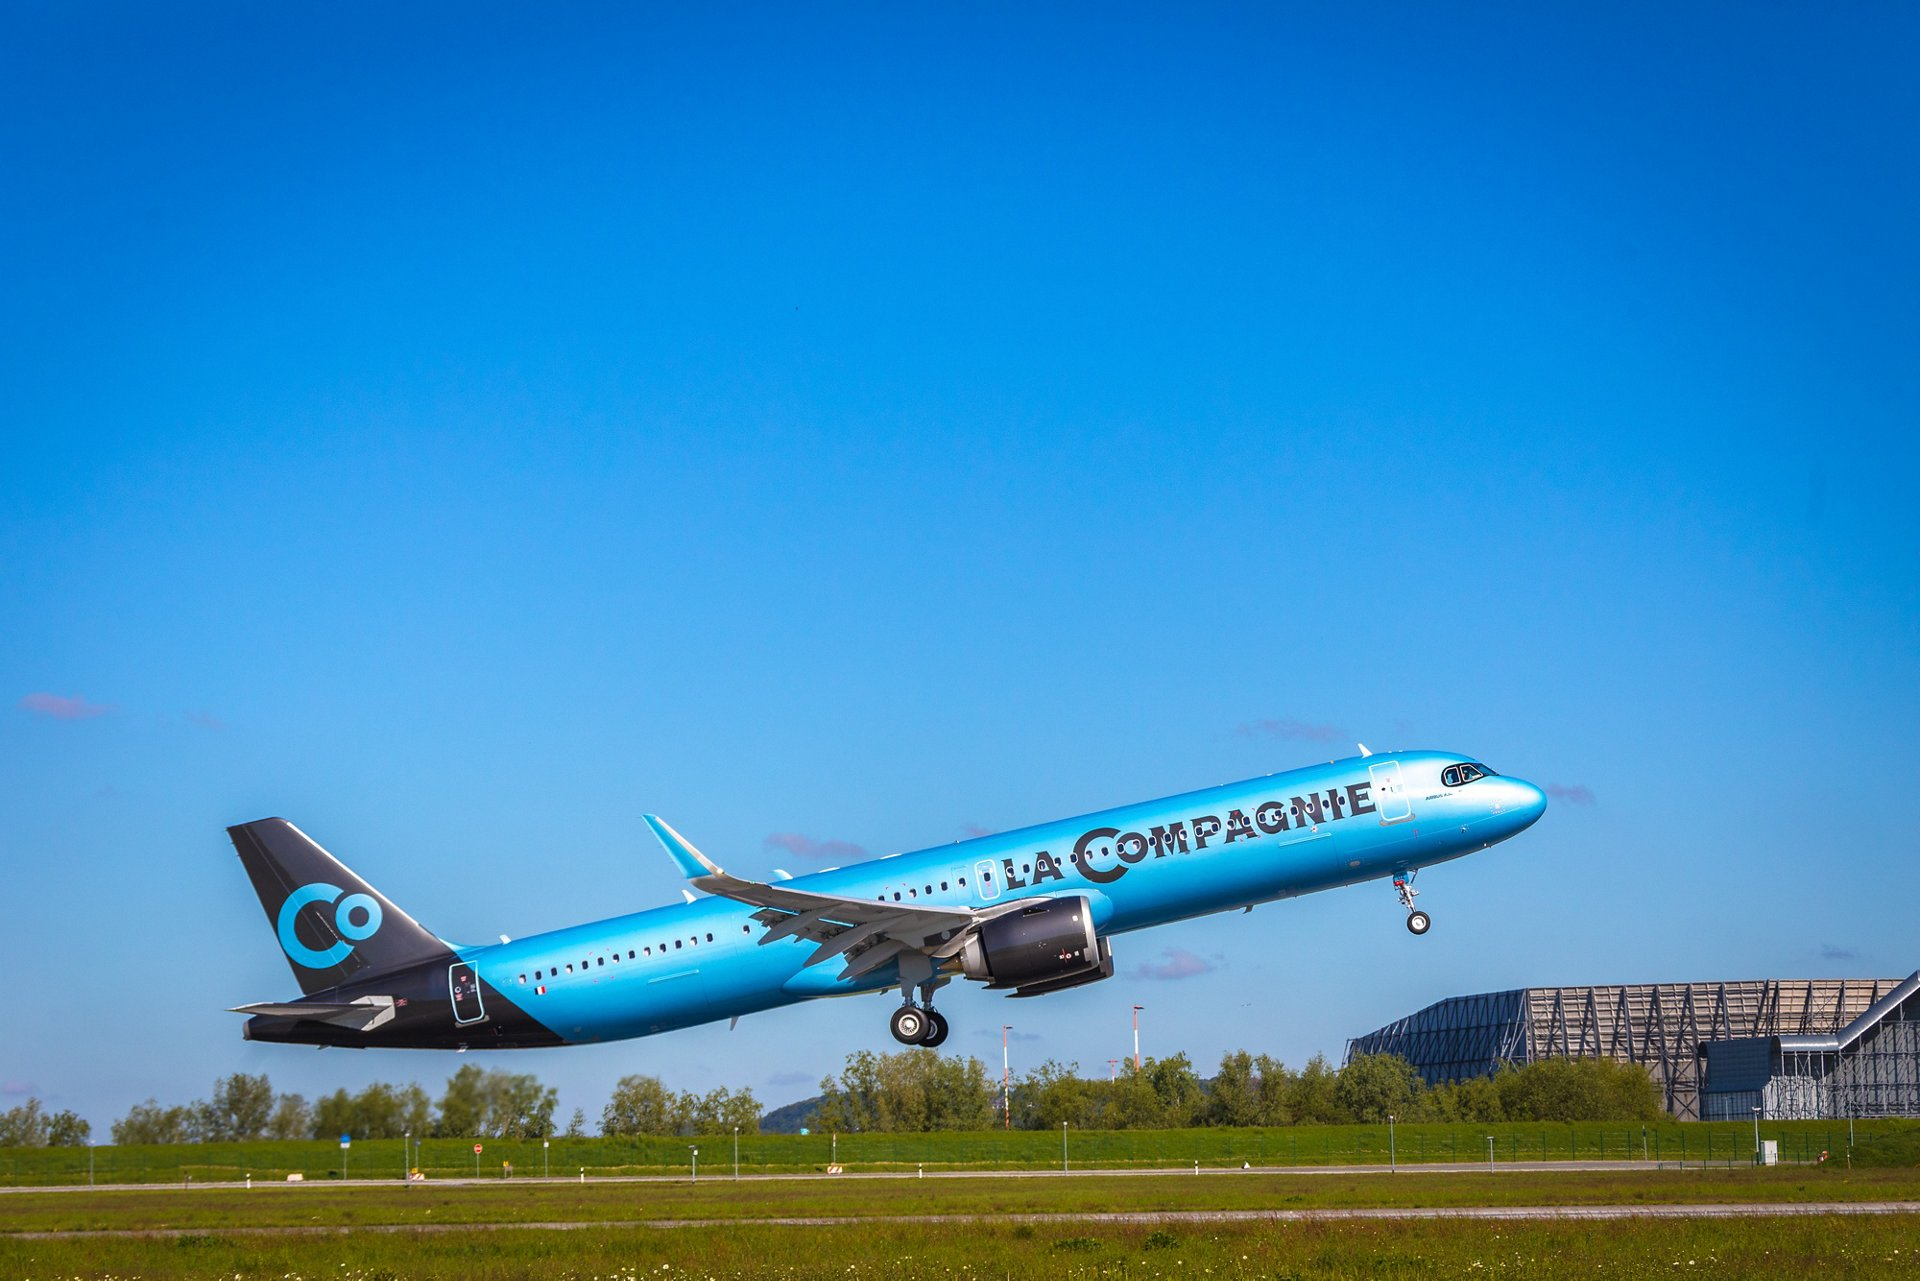 La Compagnie's first A321neo makes inaugural transatlantic flight